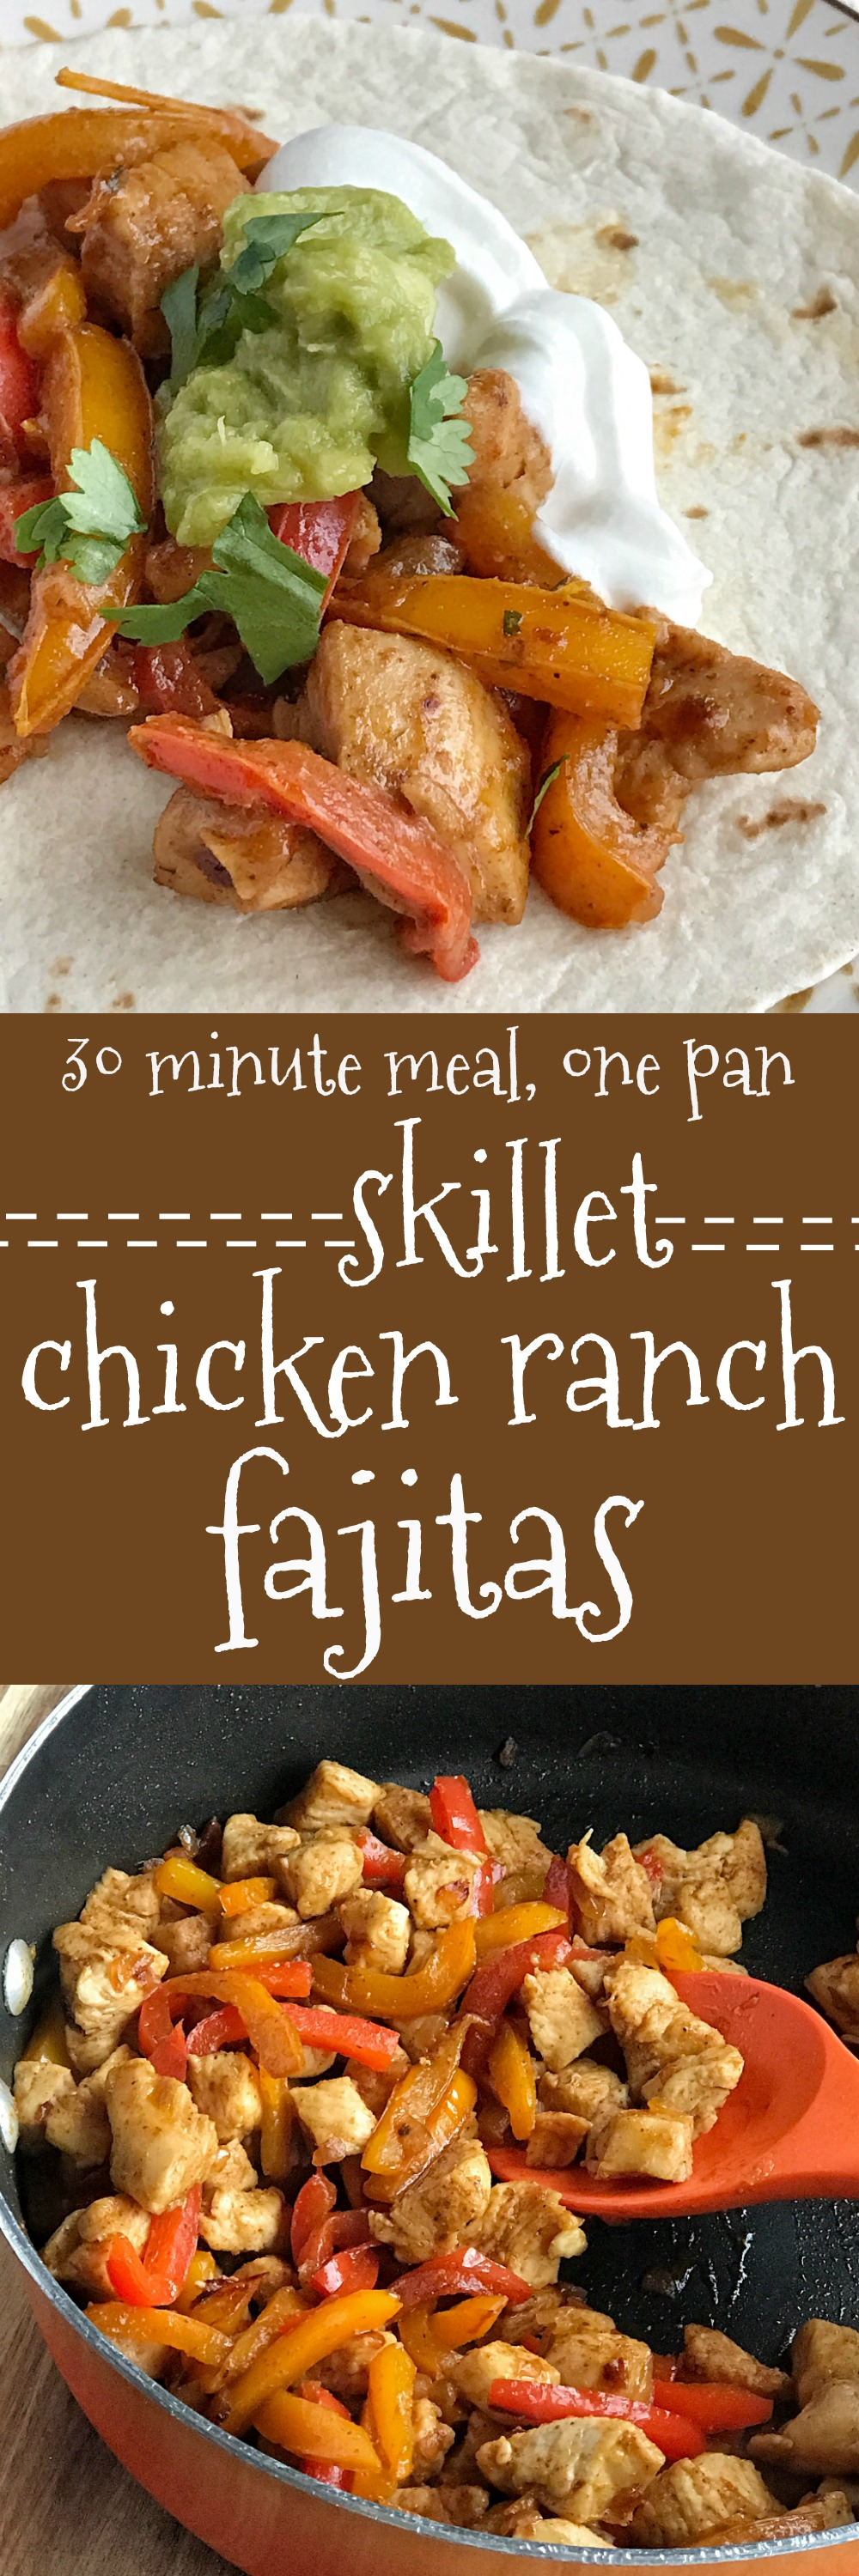 Skillet Chicken Ranch Fajitas - Together as Family